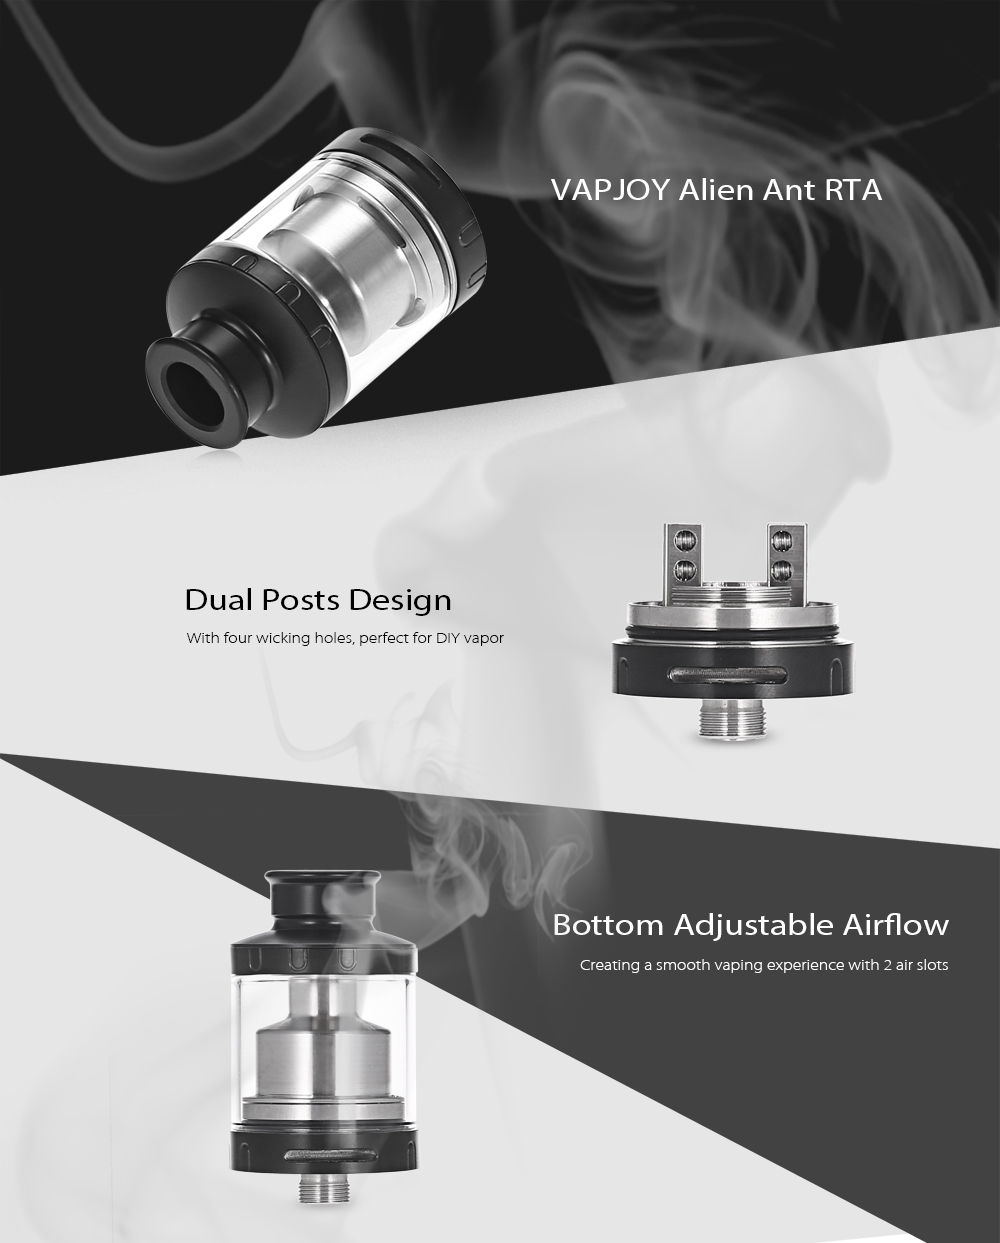 Original VAPJOY Alien Ant RTA with Bottom Adjustable Airflow / Dual Posts / 3.5ml for E Cigarette